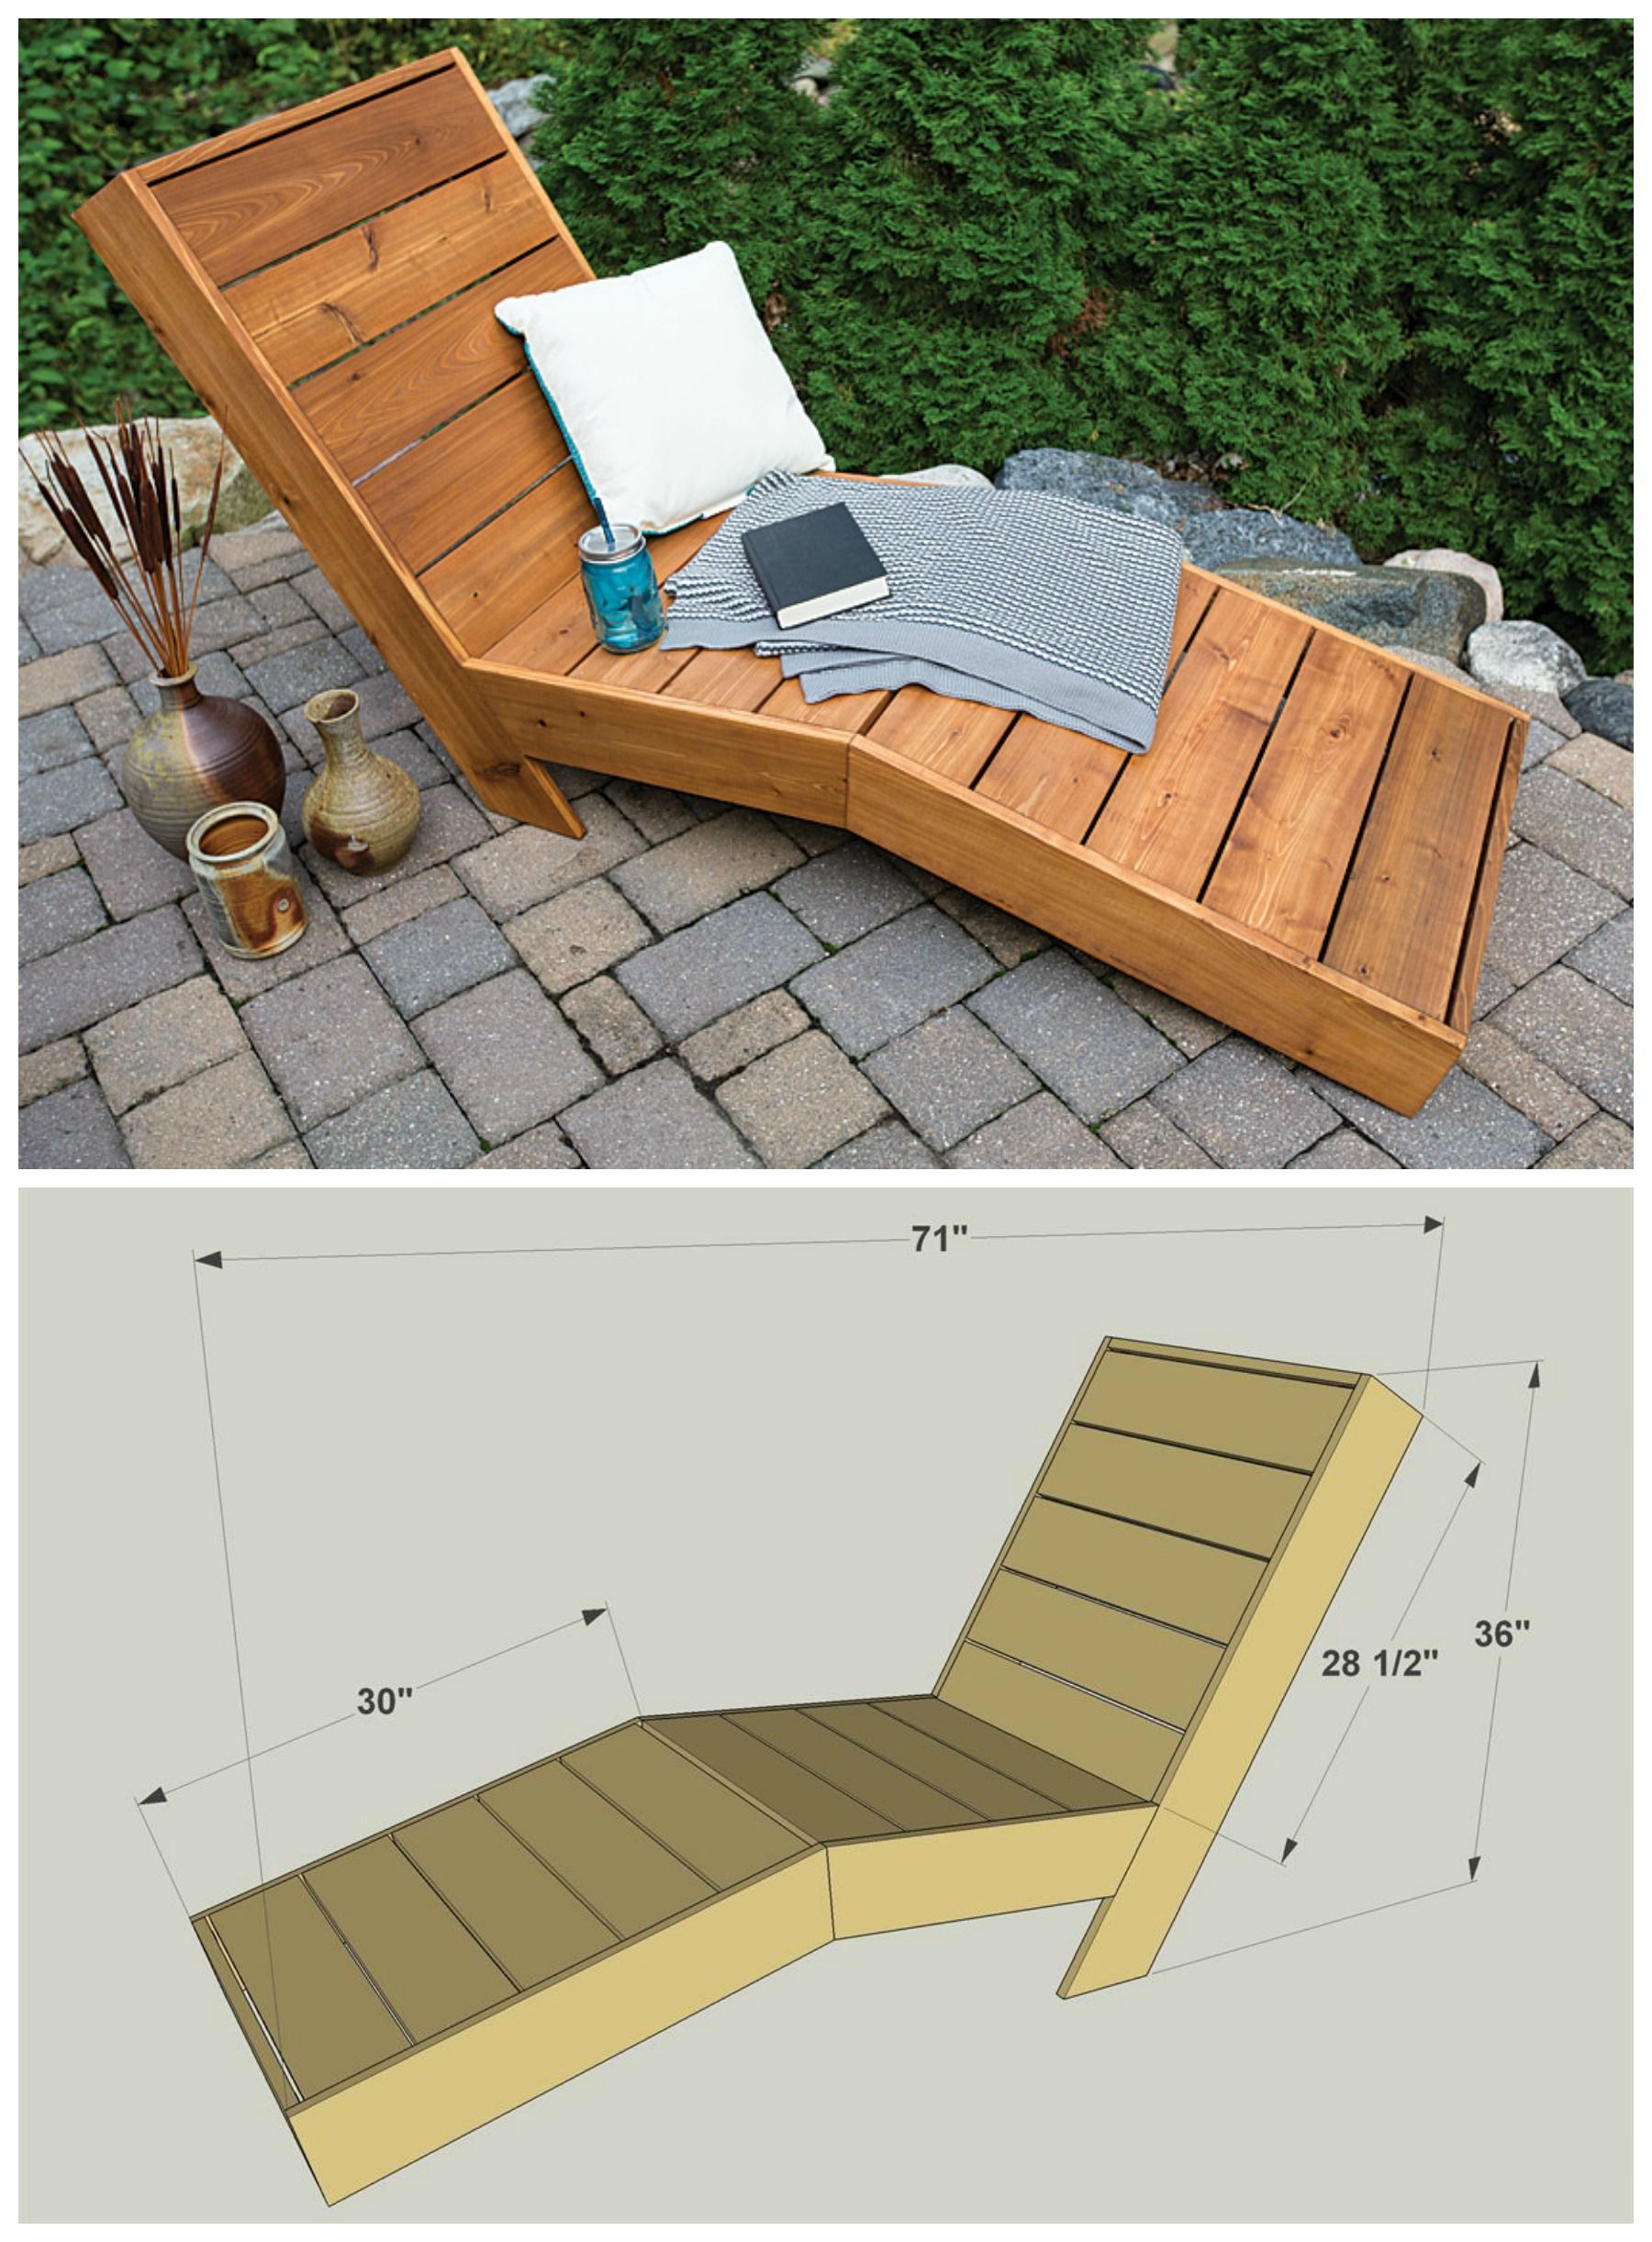 Diy Outdoor Chaise Lounge Free Plans Buildsomething